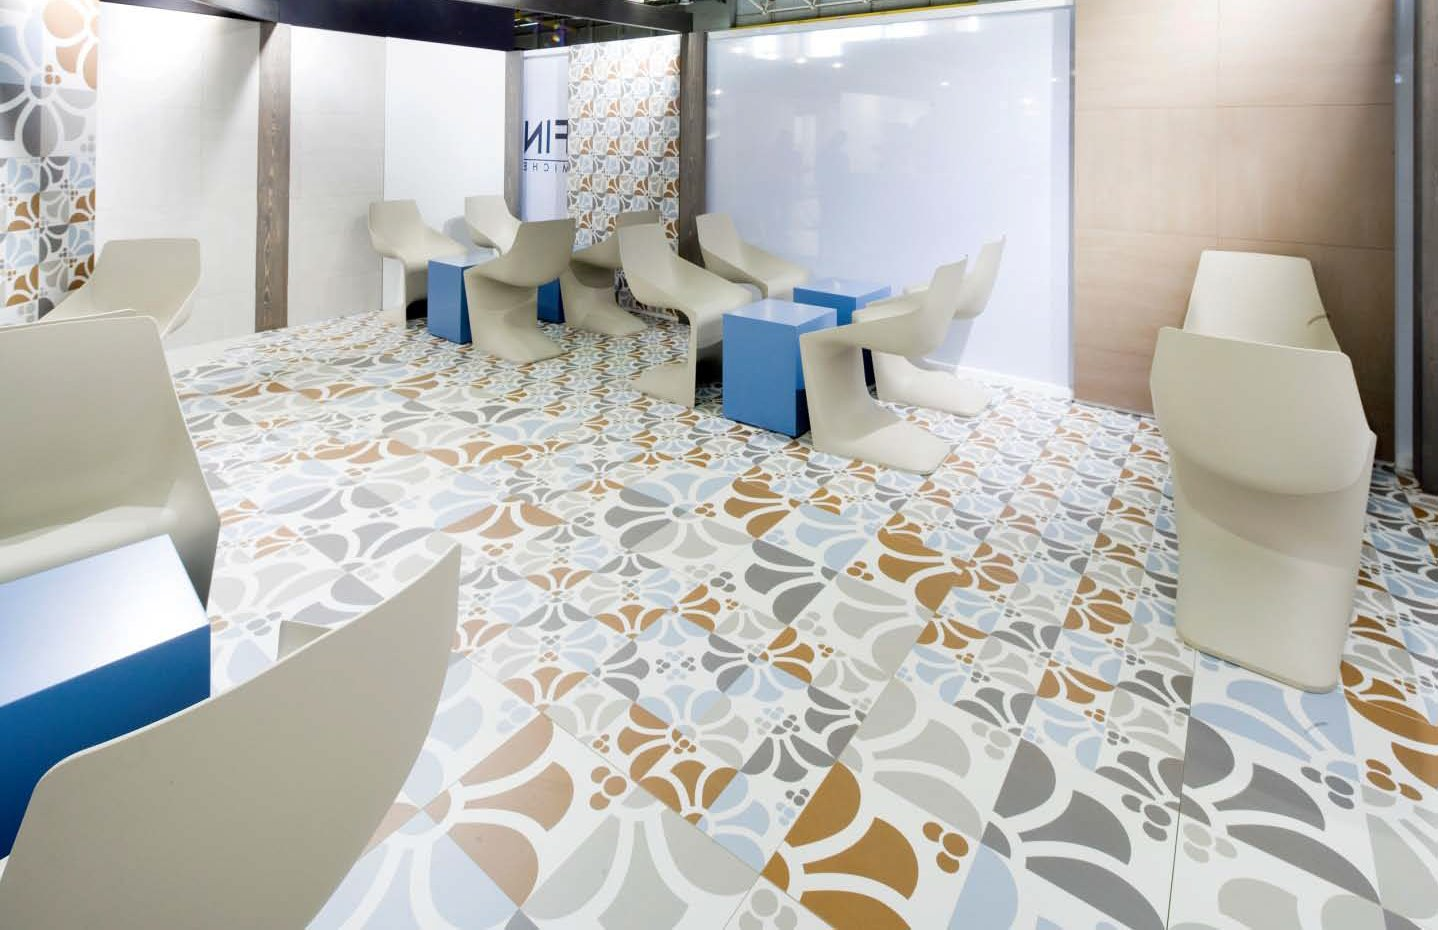 Trip to italy finding the worlds most beautiful ceramic tiles view in gallery open spaces design dailygadgetfo Images